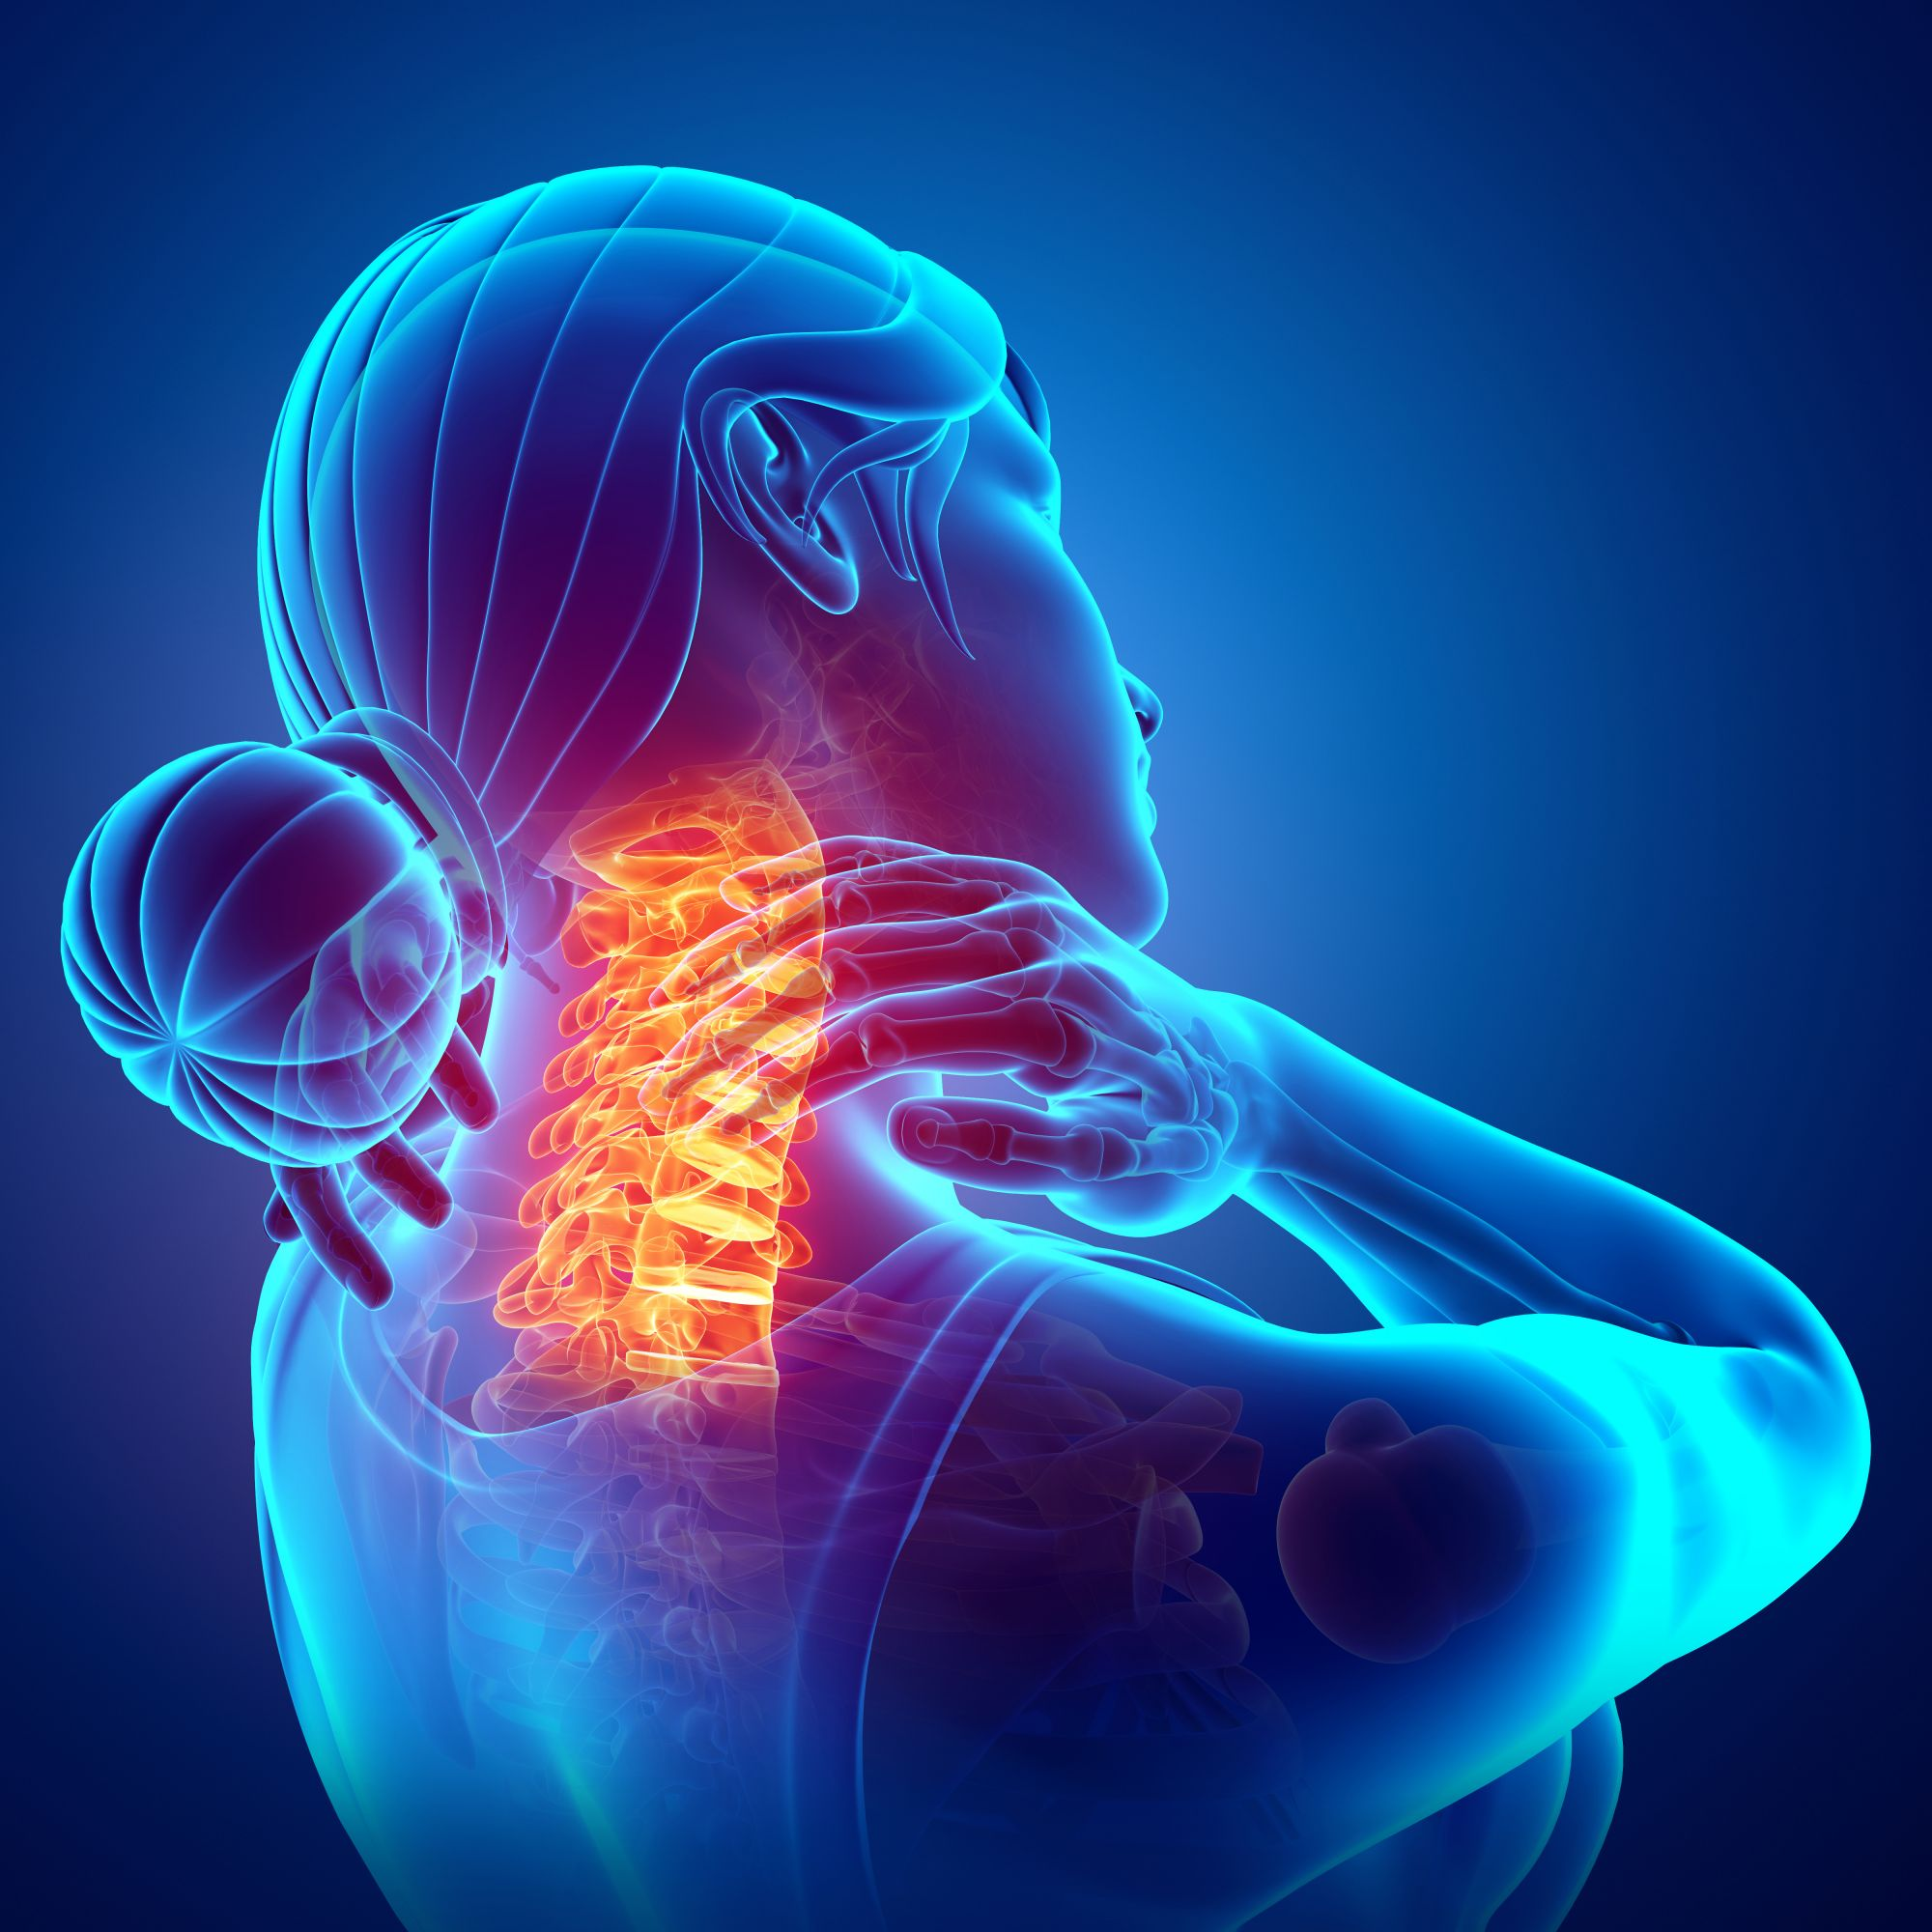 Chiropracic Treatment For Migraine: The House Clinics, Bristol